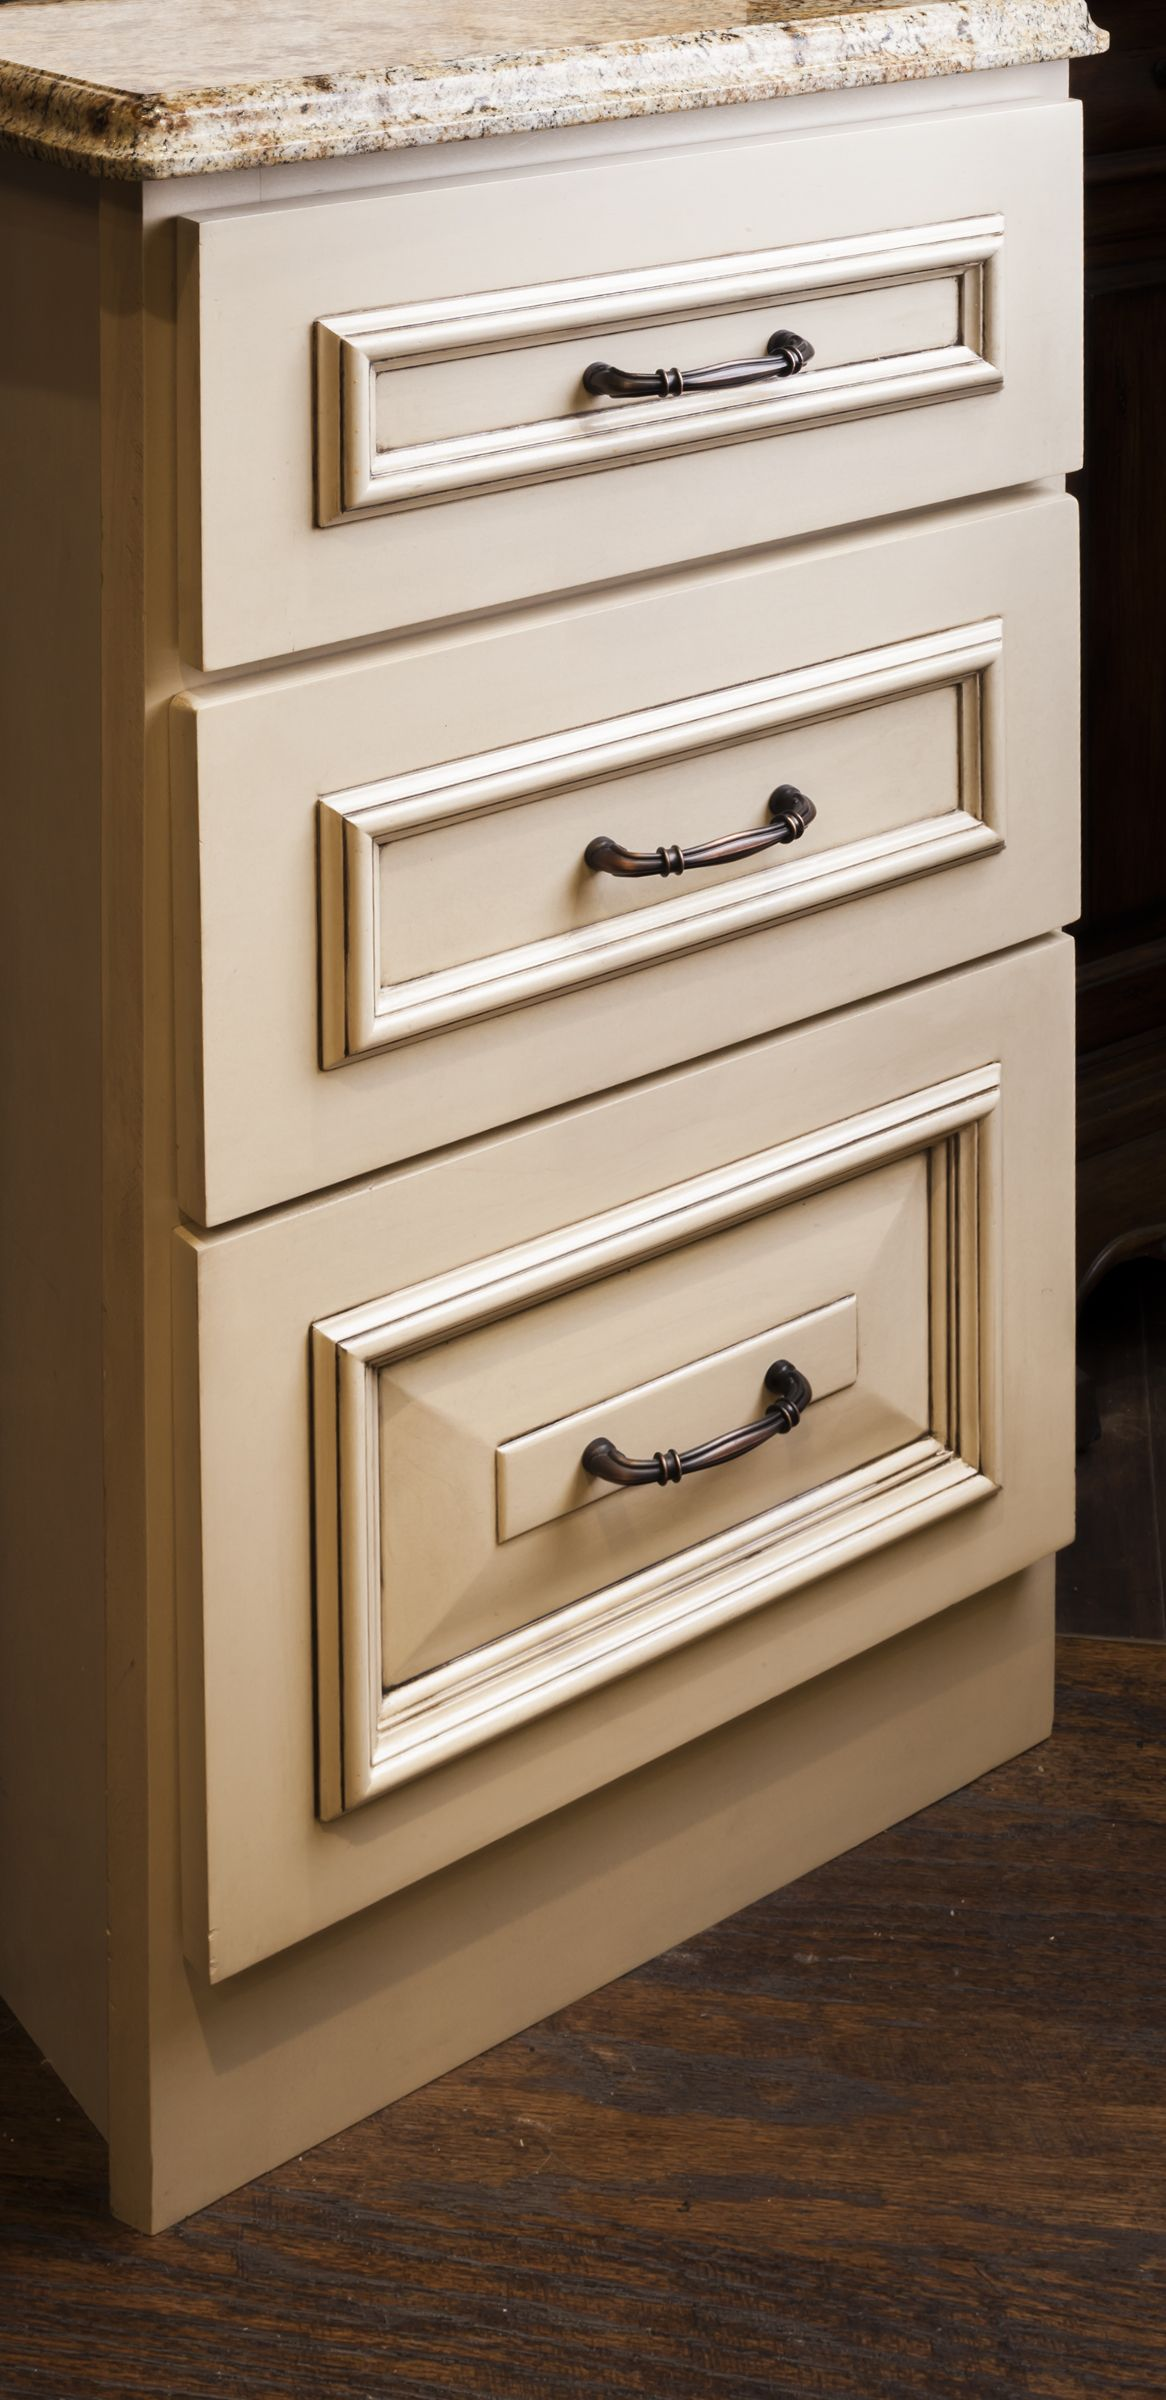 Lafayette cabinet pull from Jeffrey Alexander by Hardware